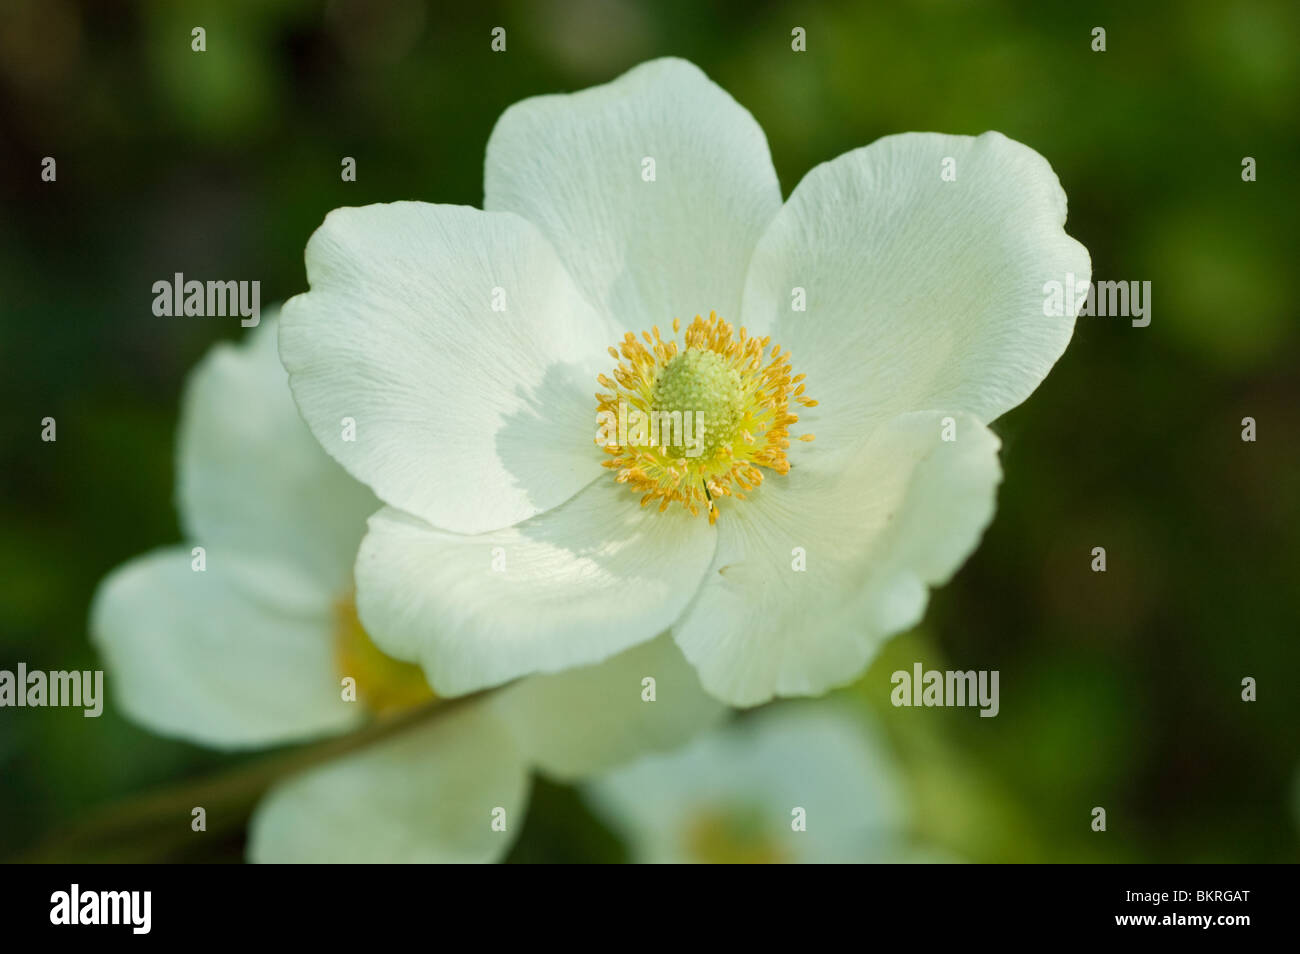 Anemone sylvestris, Yellow white flowers, Common wood anemone, Woodland drifts, wildflowers , Ranunculaceae, spring, - Stock Image